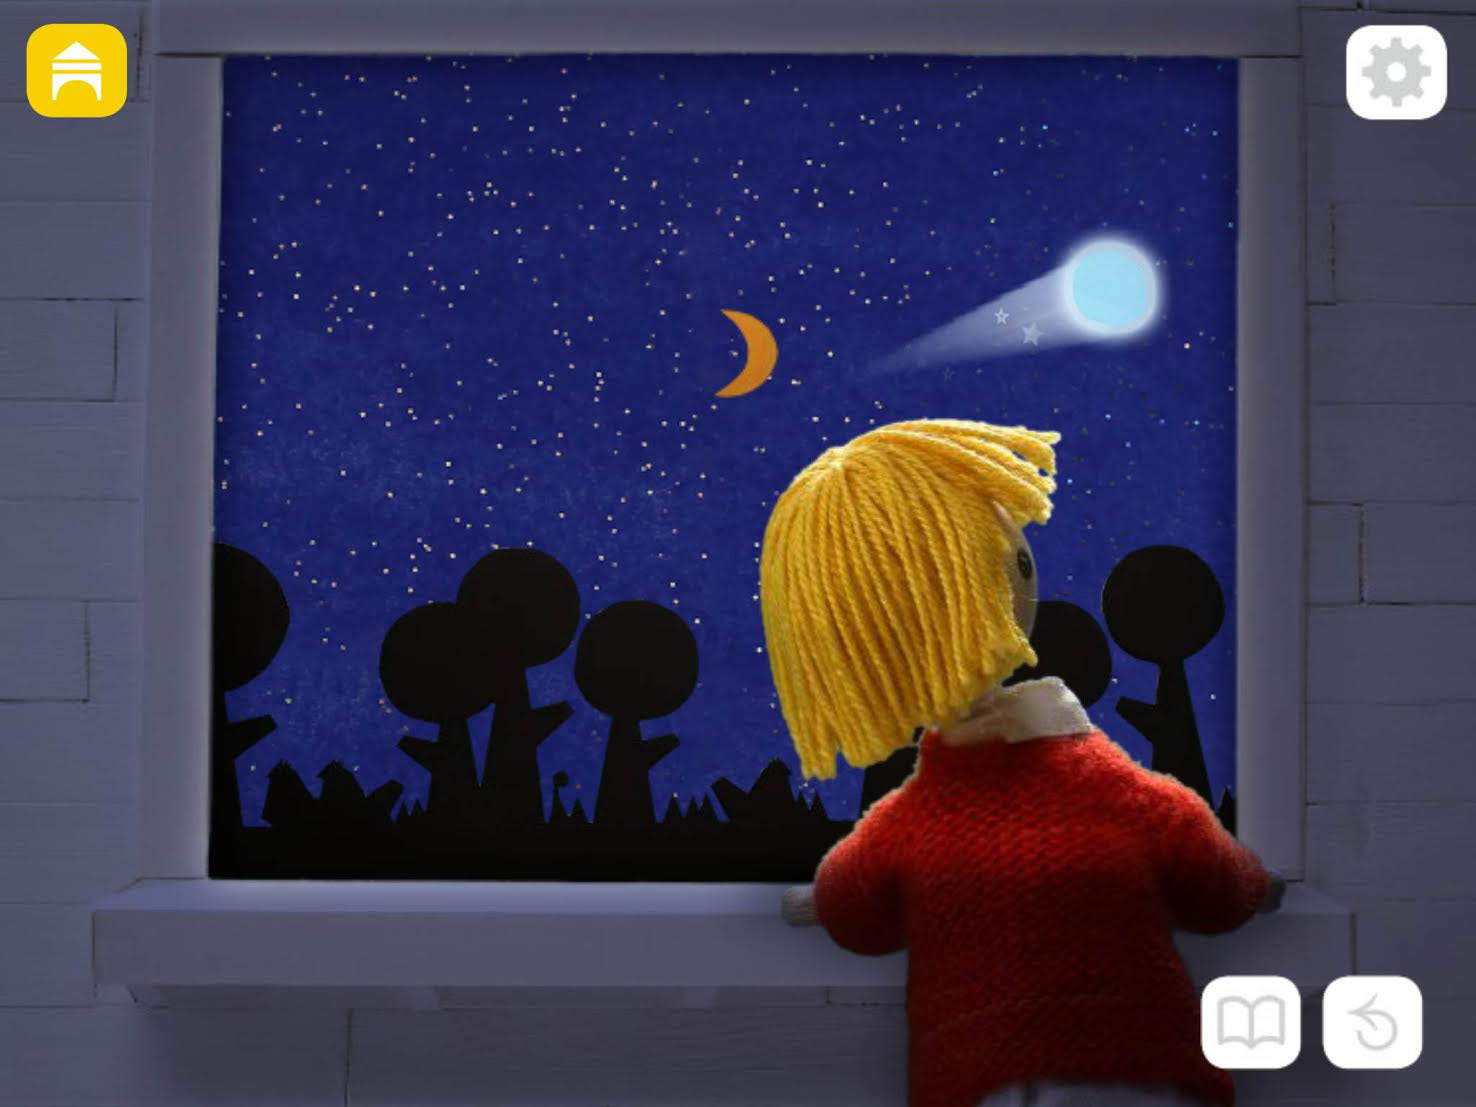 Watch comets with Windy